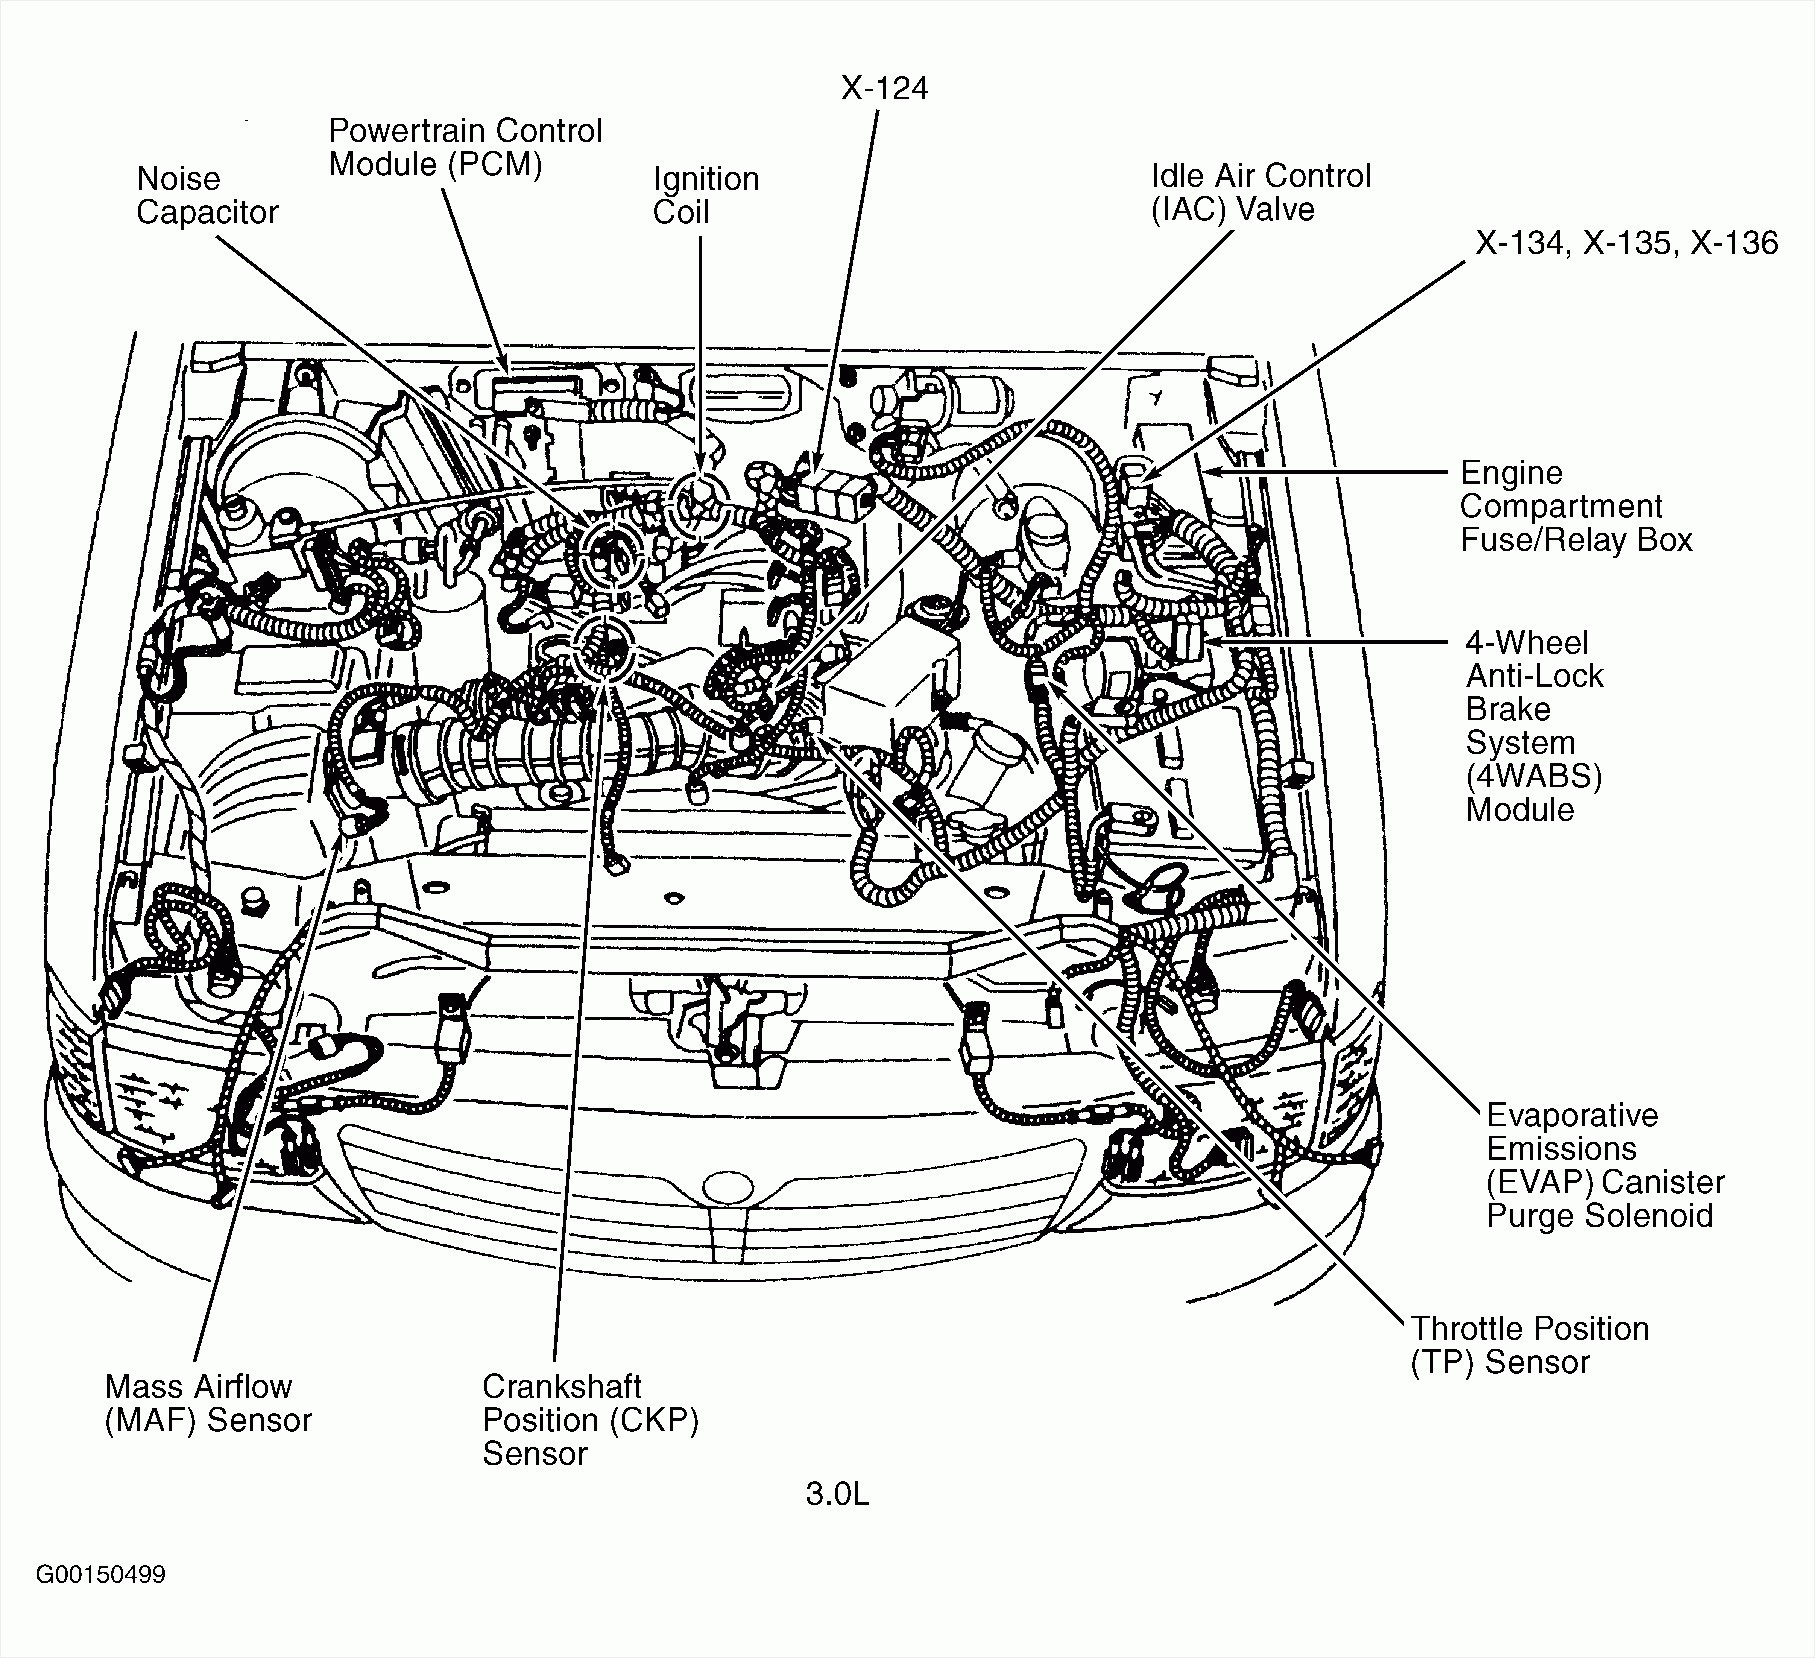 hight resolution of 1993 ford 4 0 engine diagram use wiring diagram 1993 ford ranger 4 0 engine diagram 93 ford ranger engine diagram